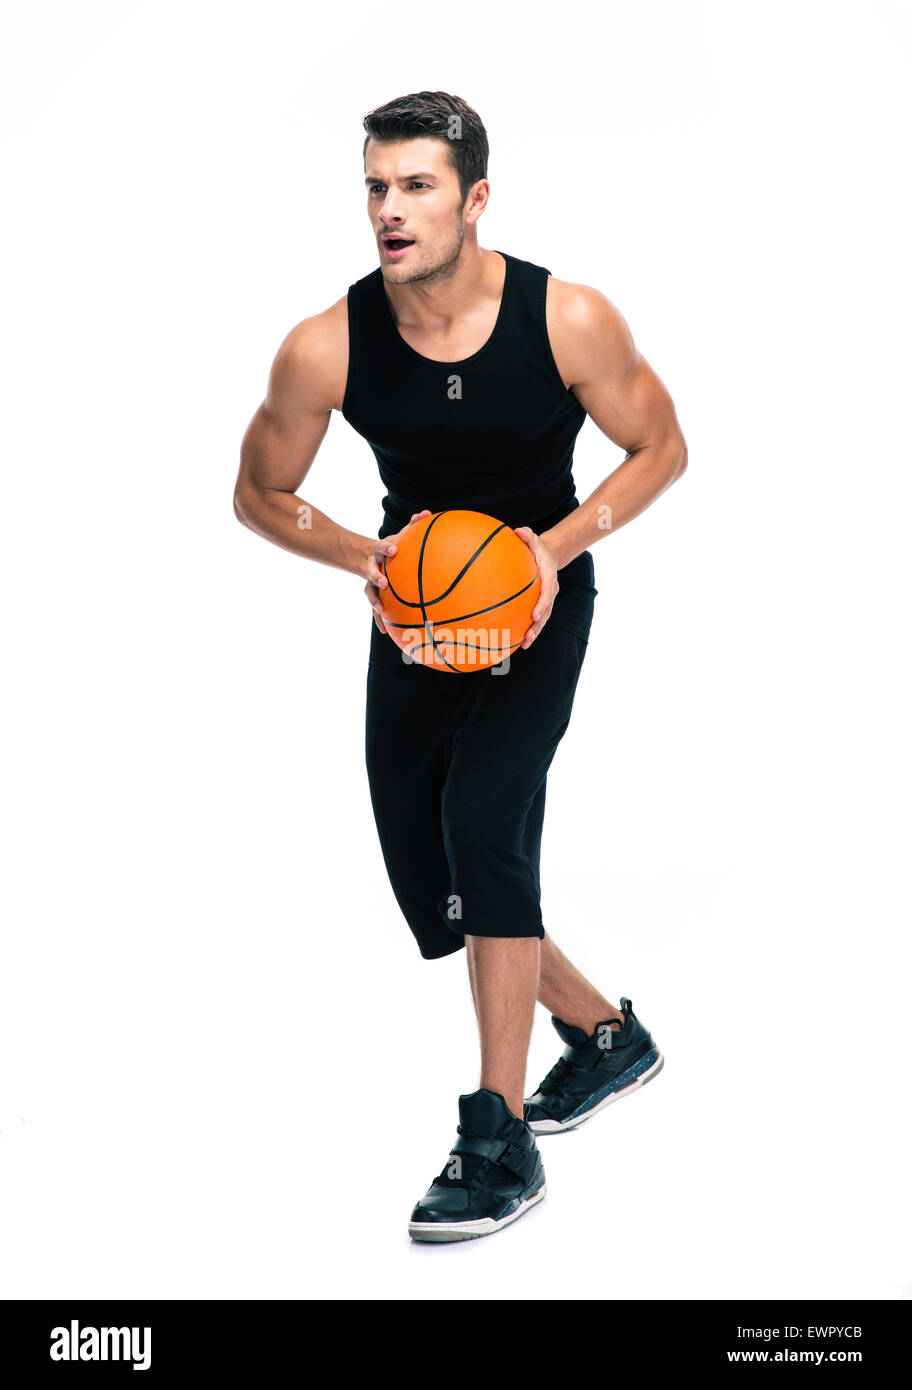 Full length portrait of a handsome man im sports wear playing in basketball isolated on a white background - Stock Image